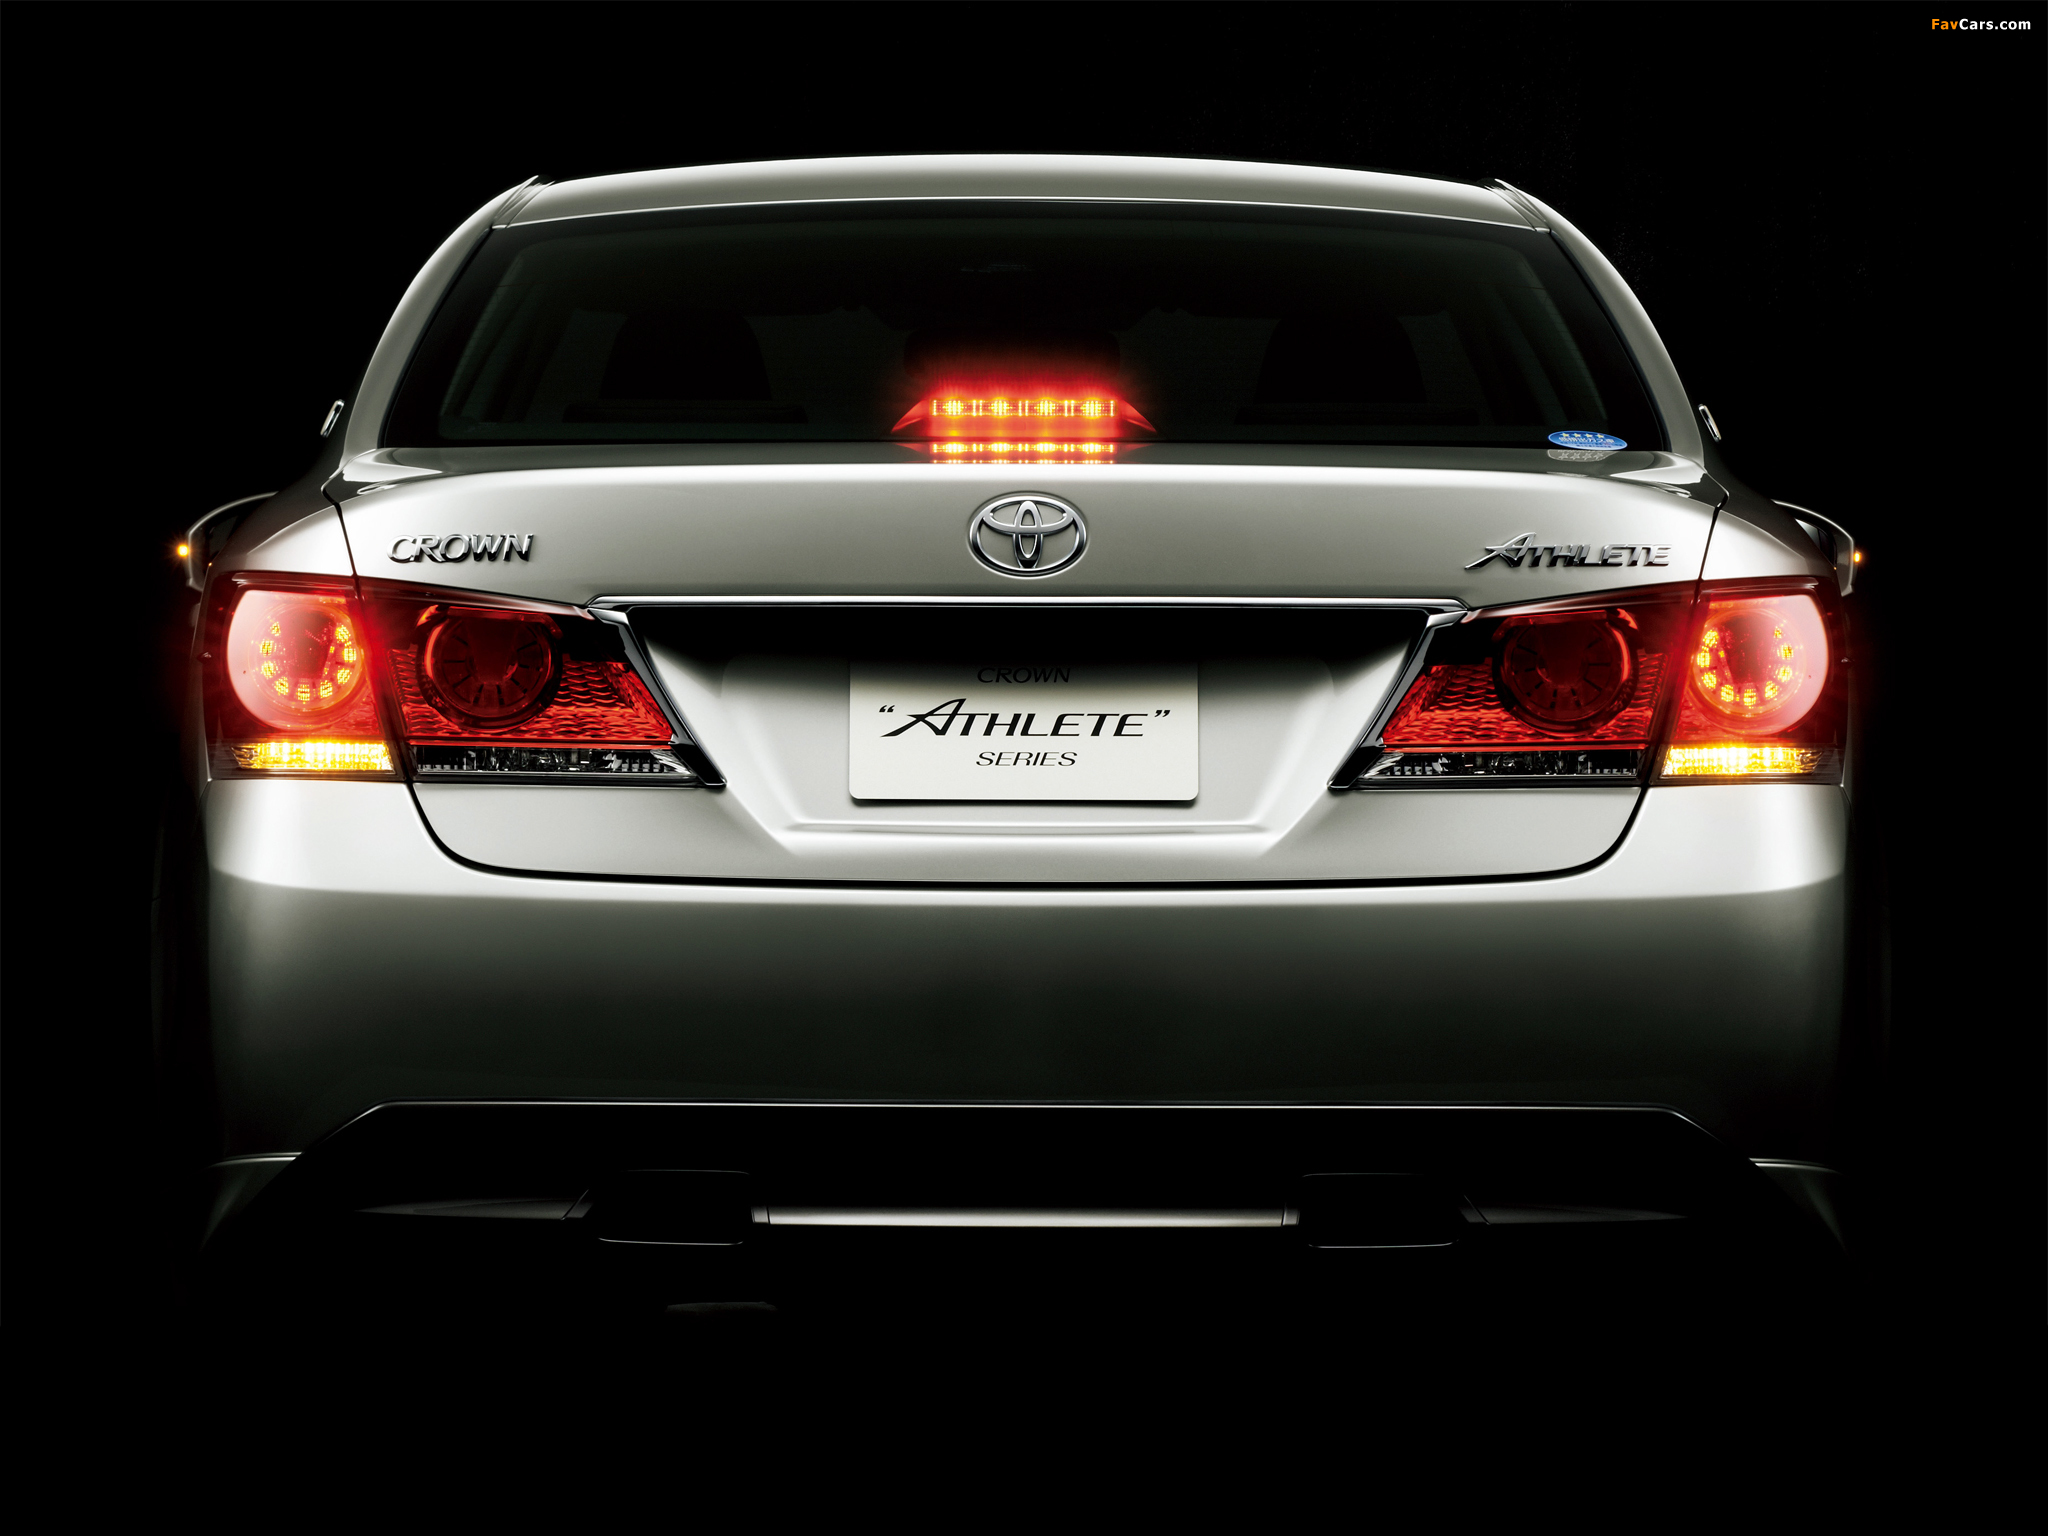 Toyota Crown Athlete 2013 for sale in Islamabad | PakWheels